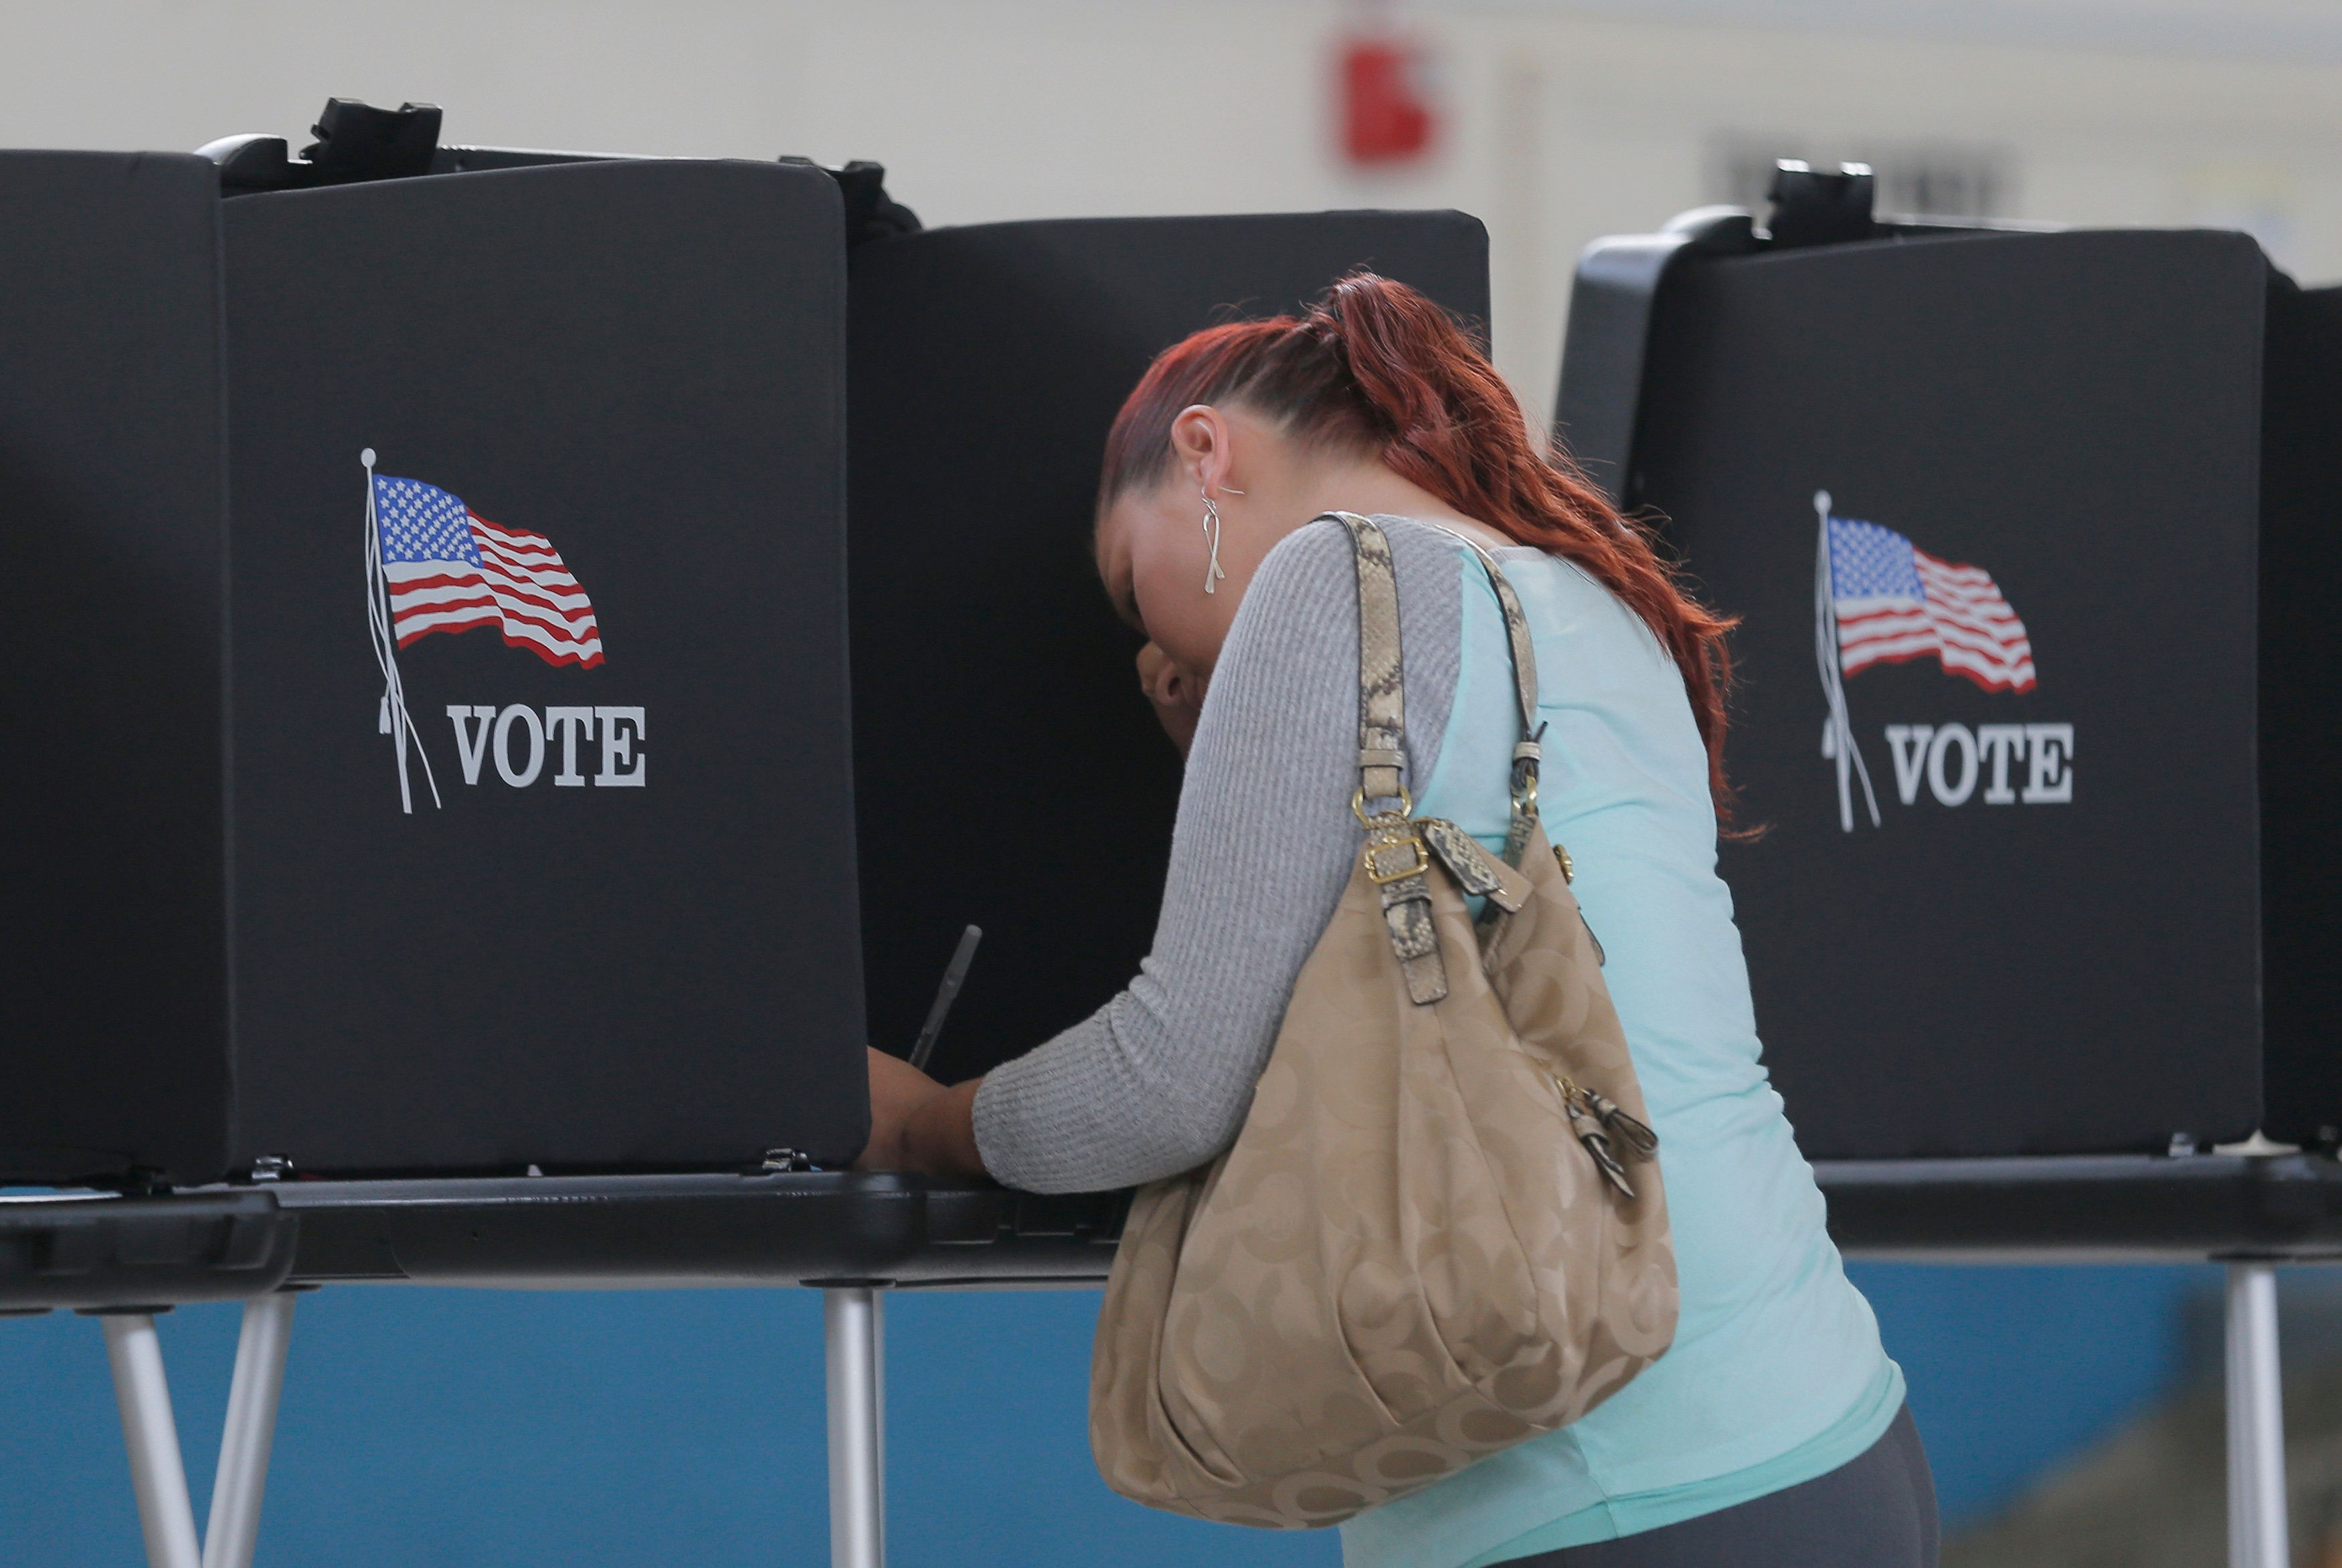 Melissa Foye fills out her ballot as she votes in the U.S. presidential election at the National Guard Armory in Smithfield, North Carolina, U.S. November 8, 2016. REUTERS/Chris Keane